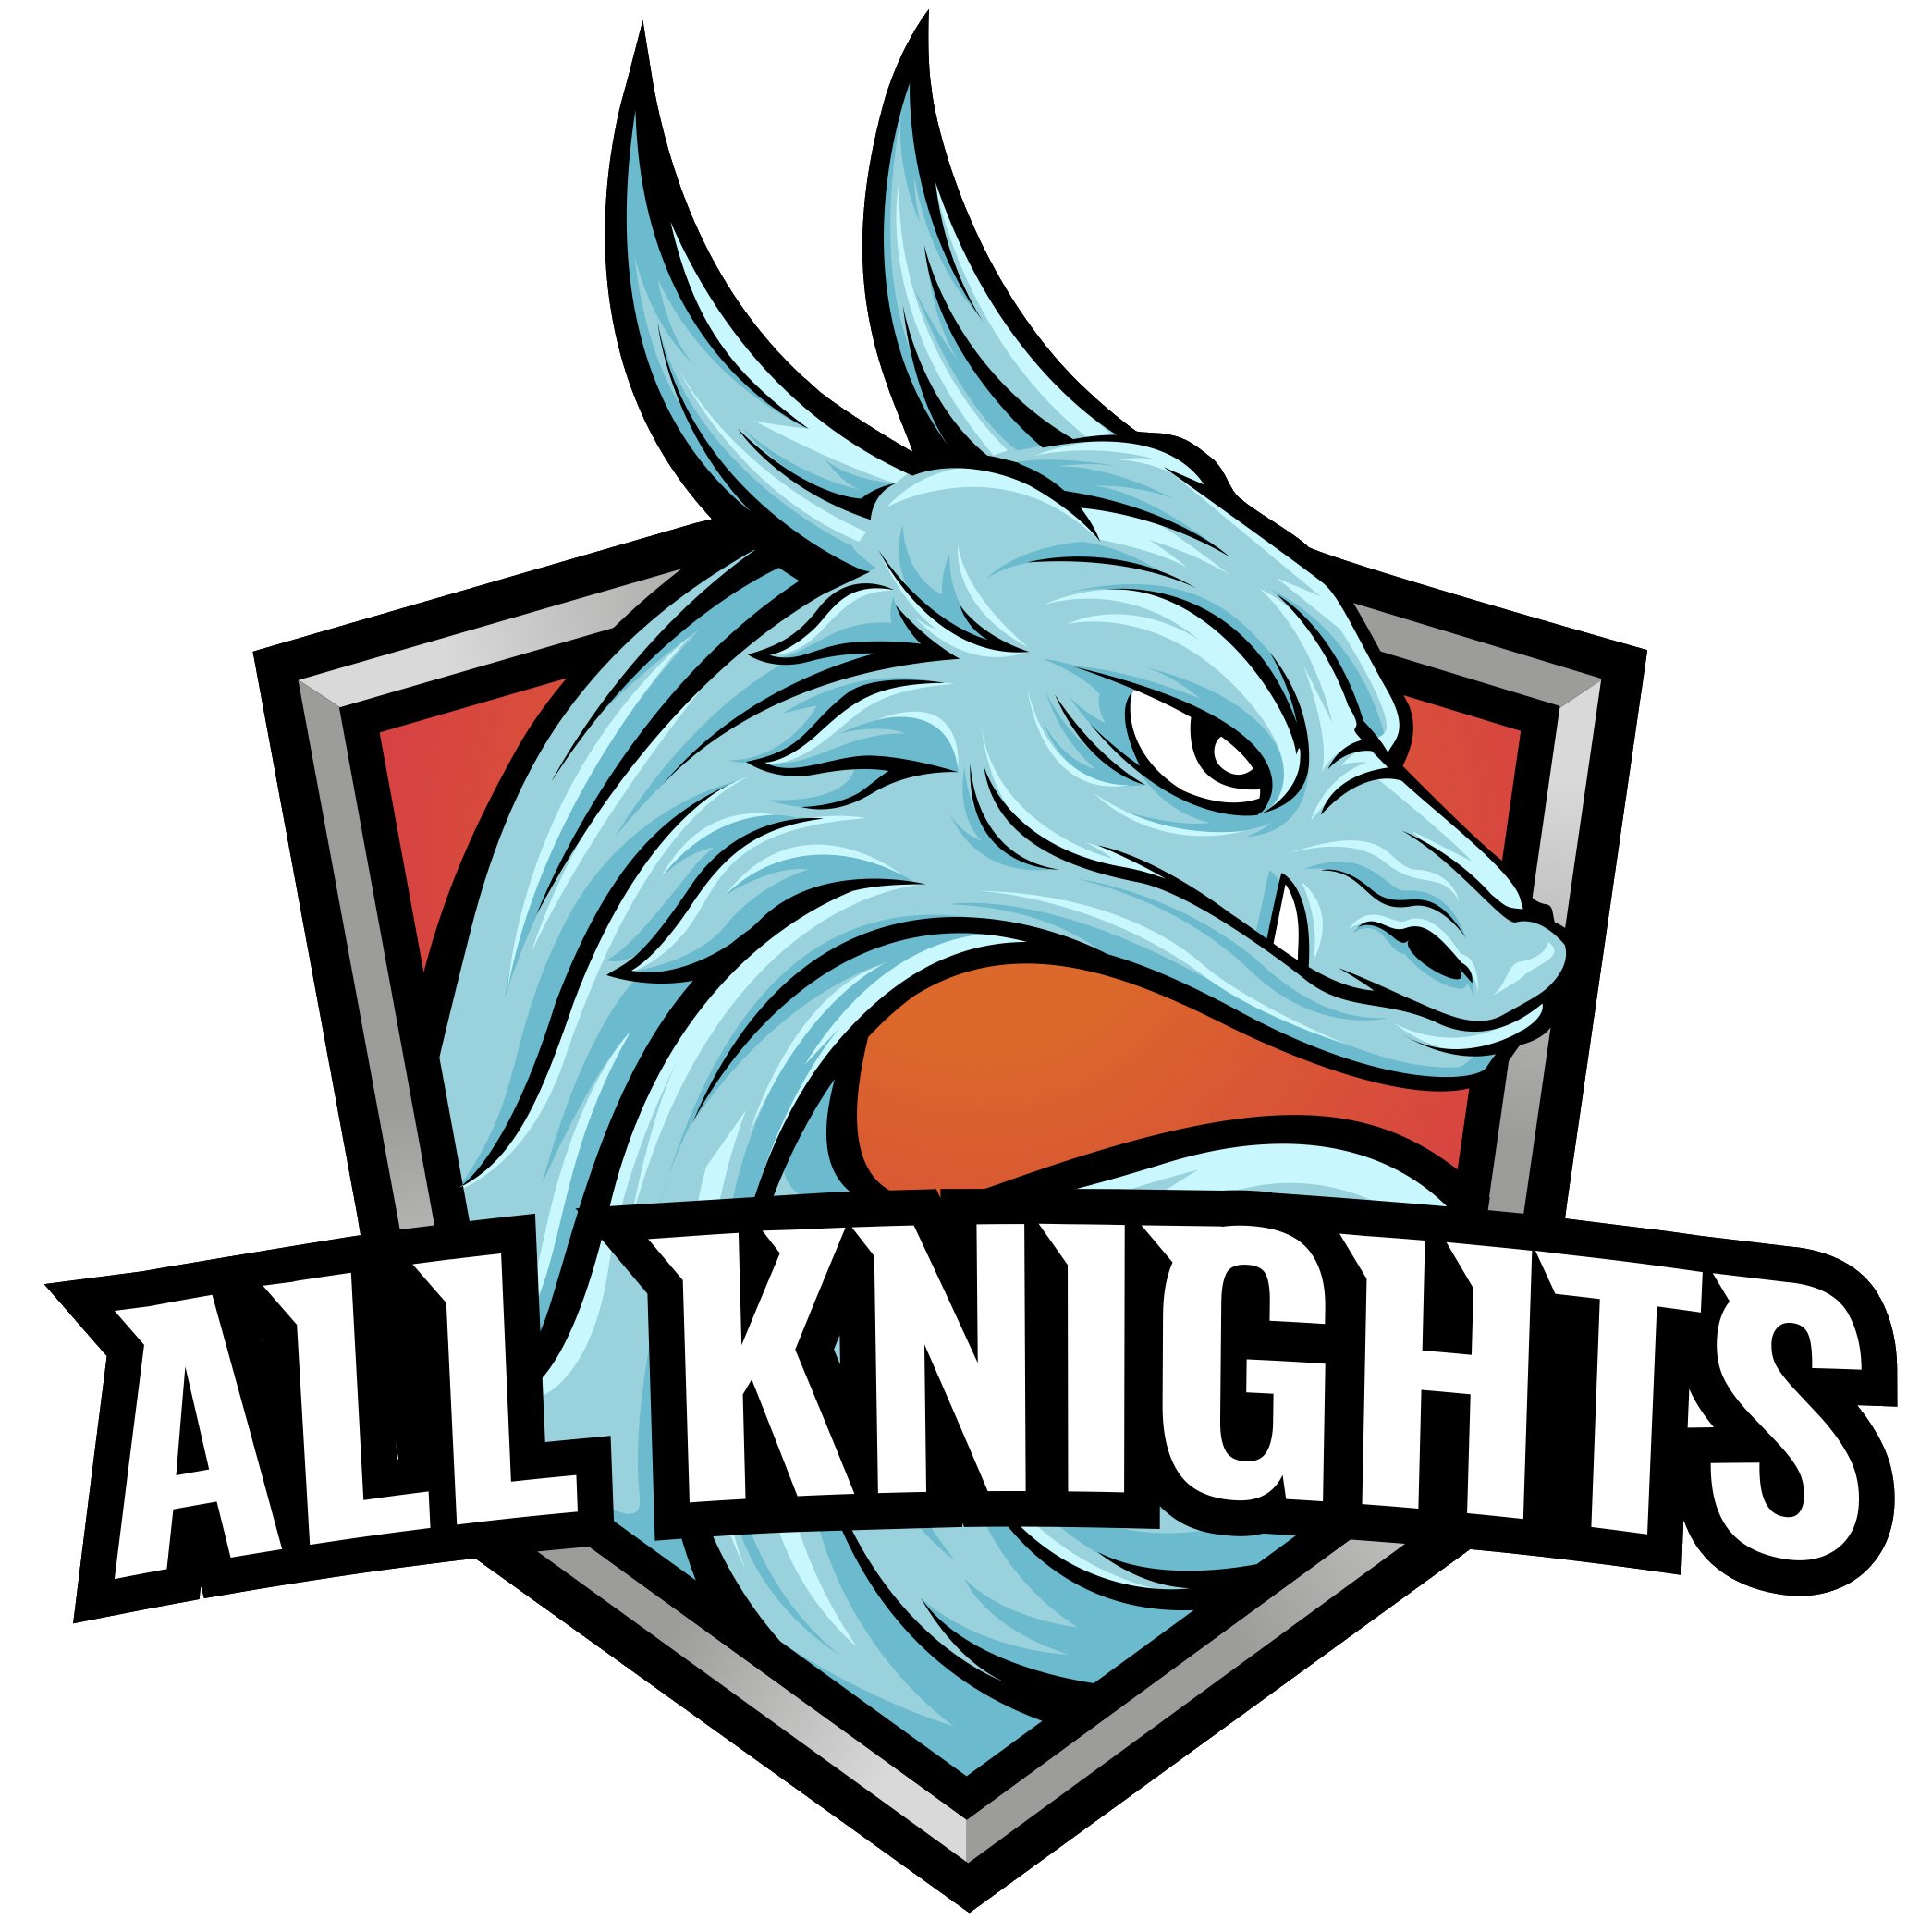 All Knights League of Legends Team